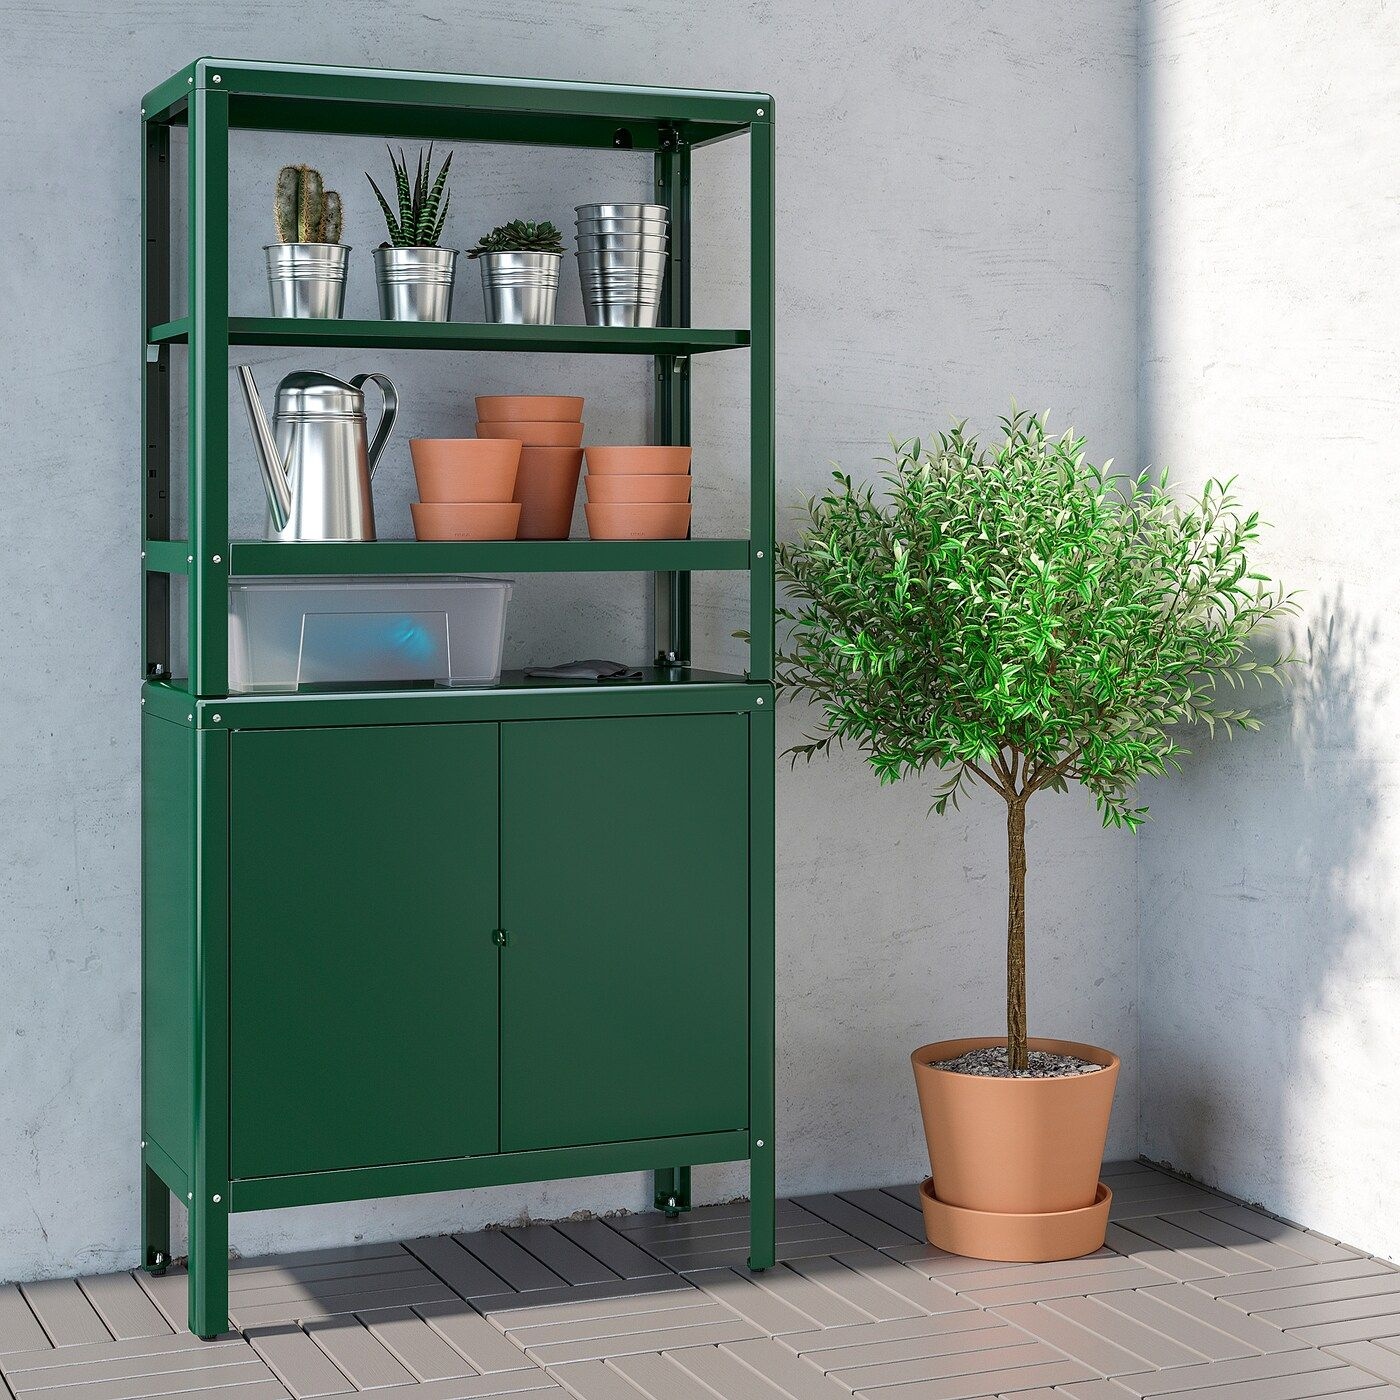 Kolbjorn Shelving Unit With Cabinet Green 31 1 2x14 5 8x63 3 8